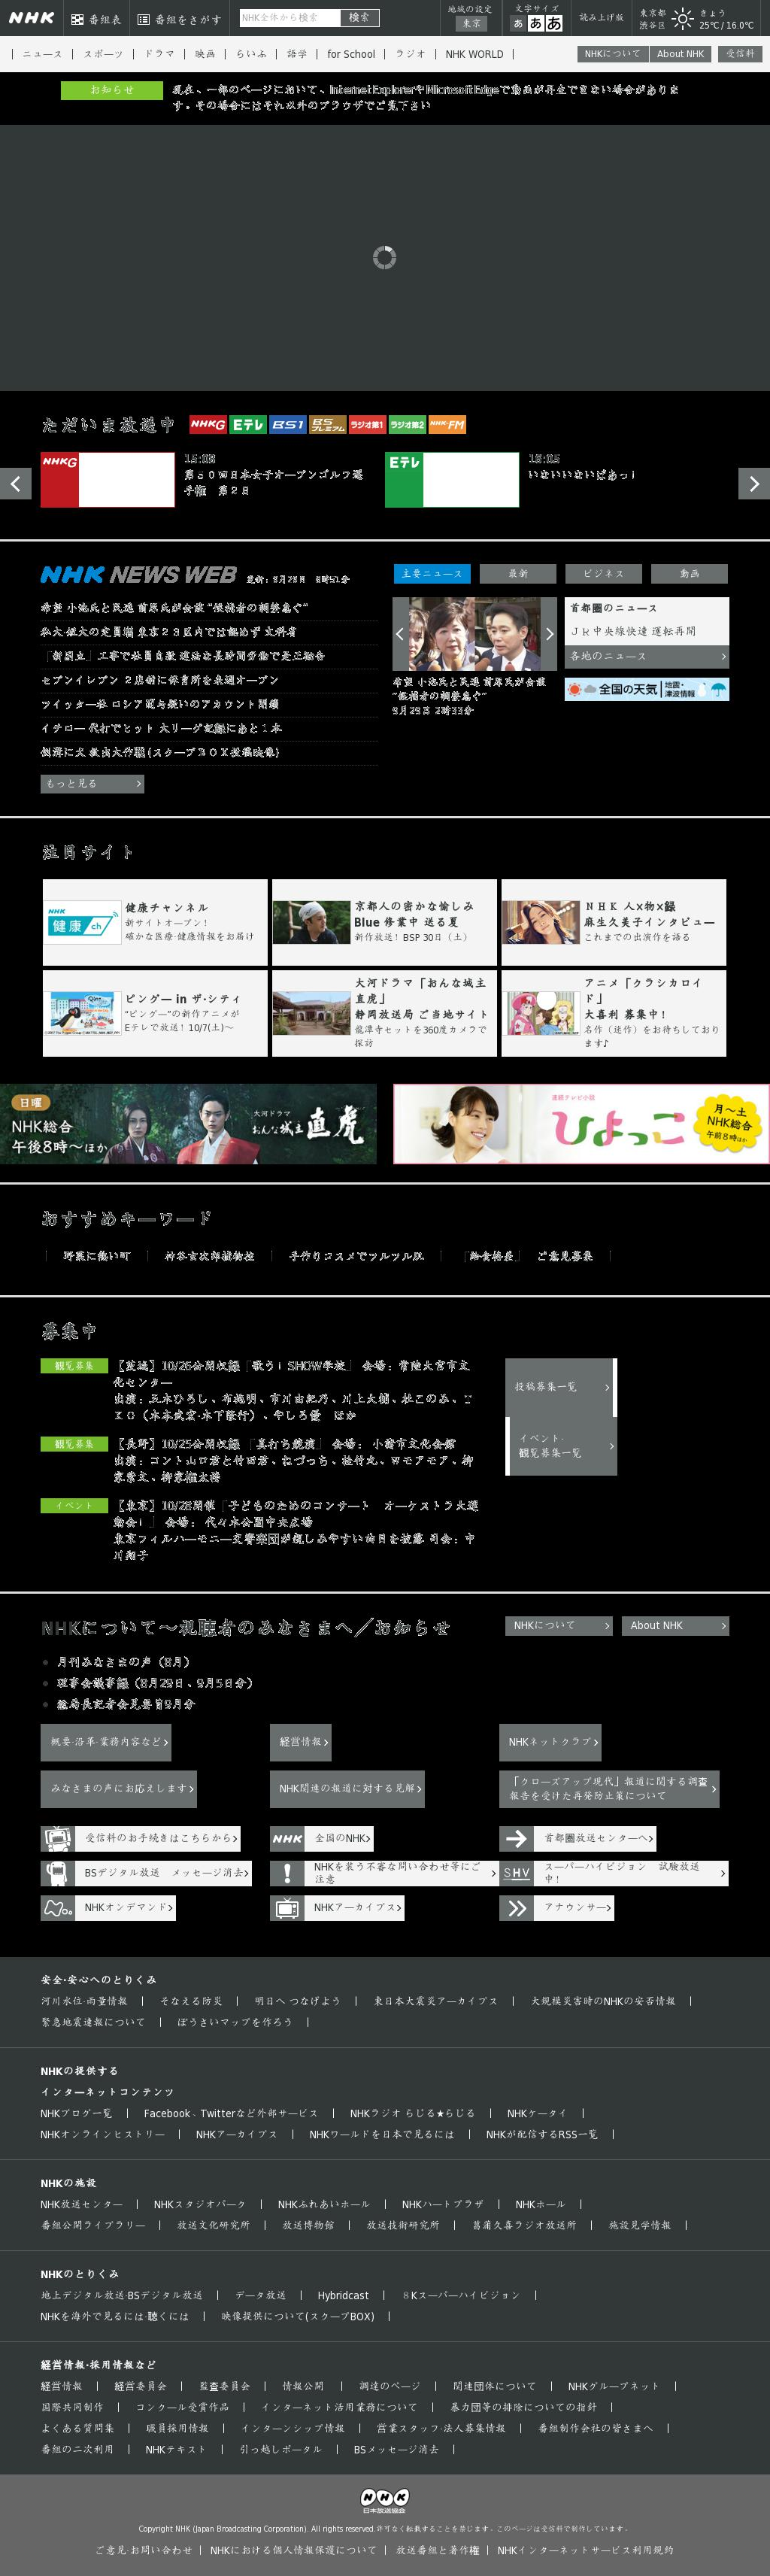 NHK Online at Friday Sept. 29, 2017, 7:09 a.m. UTC